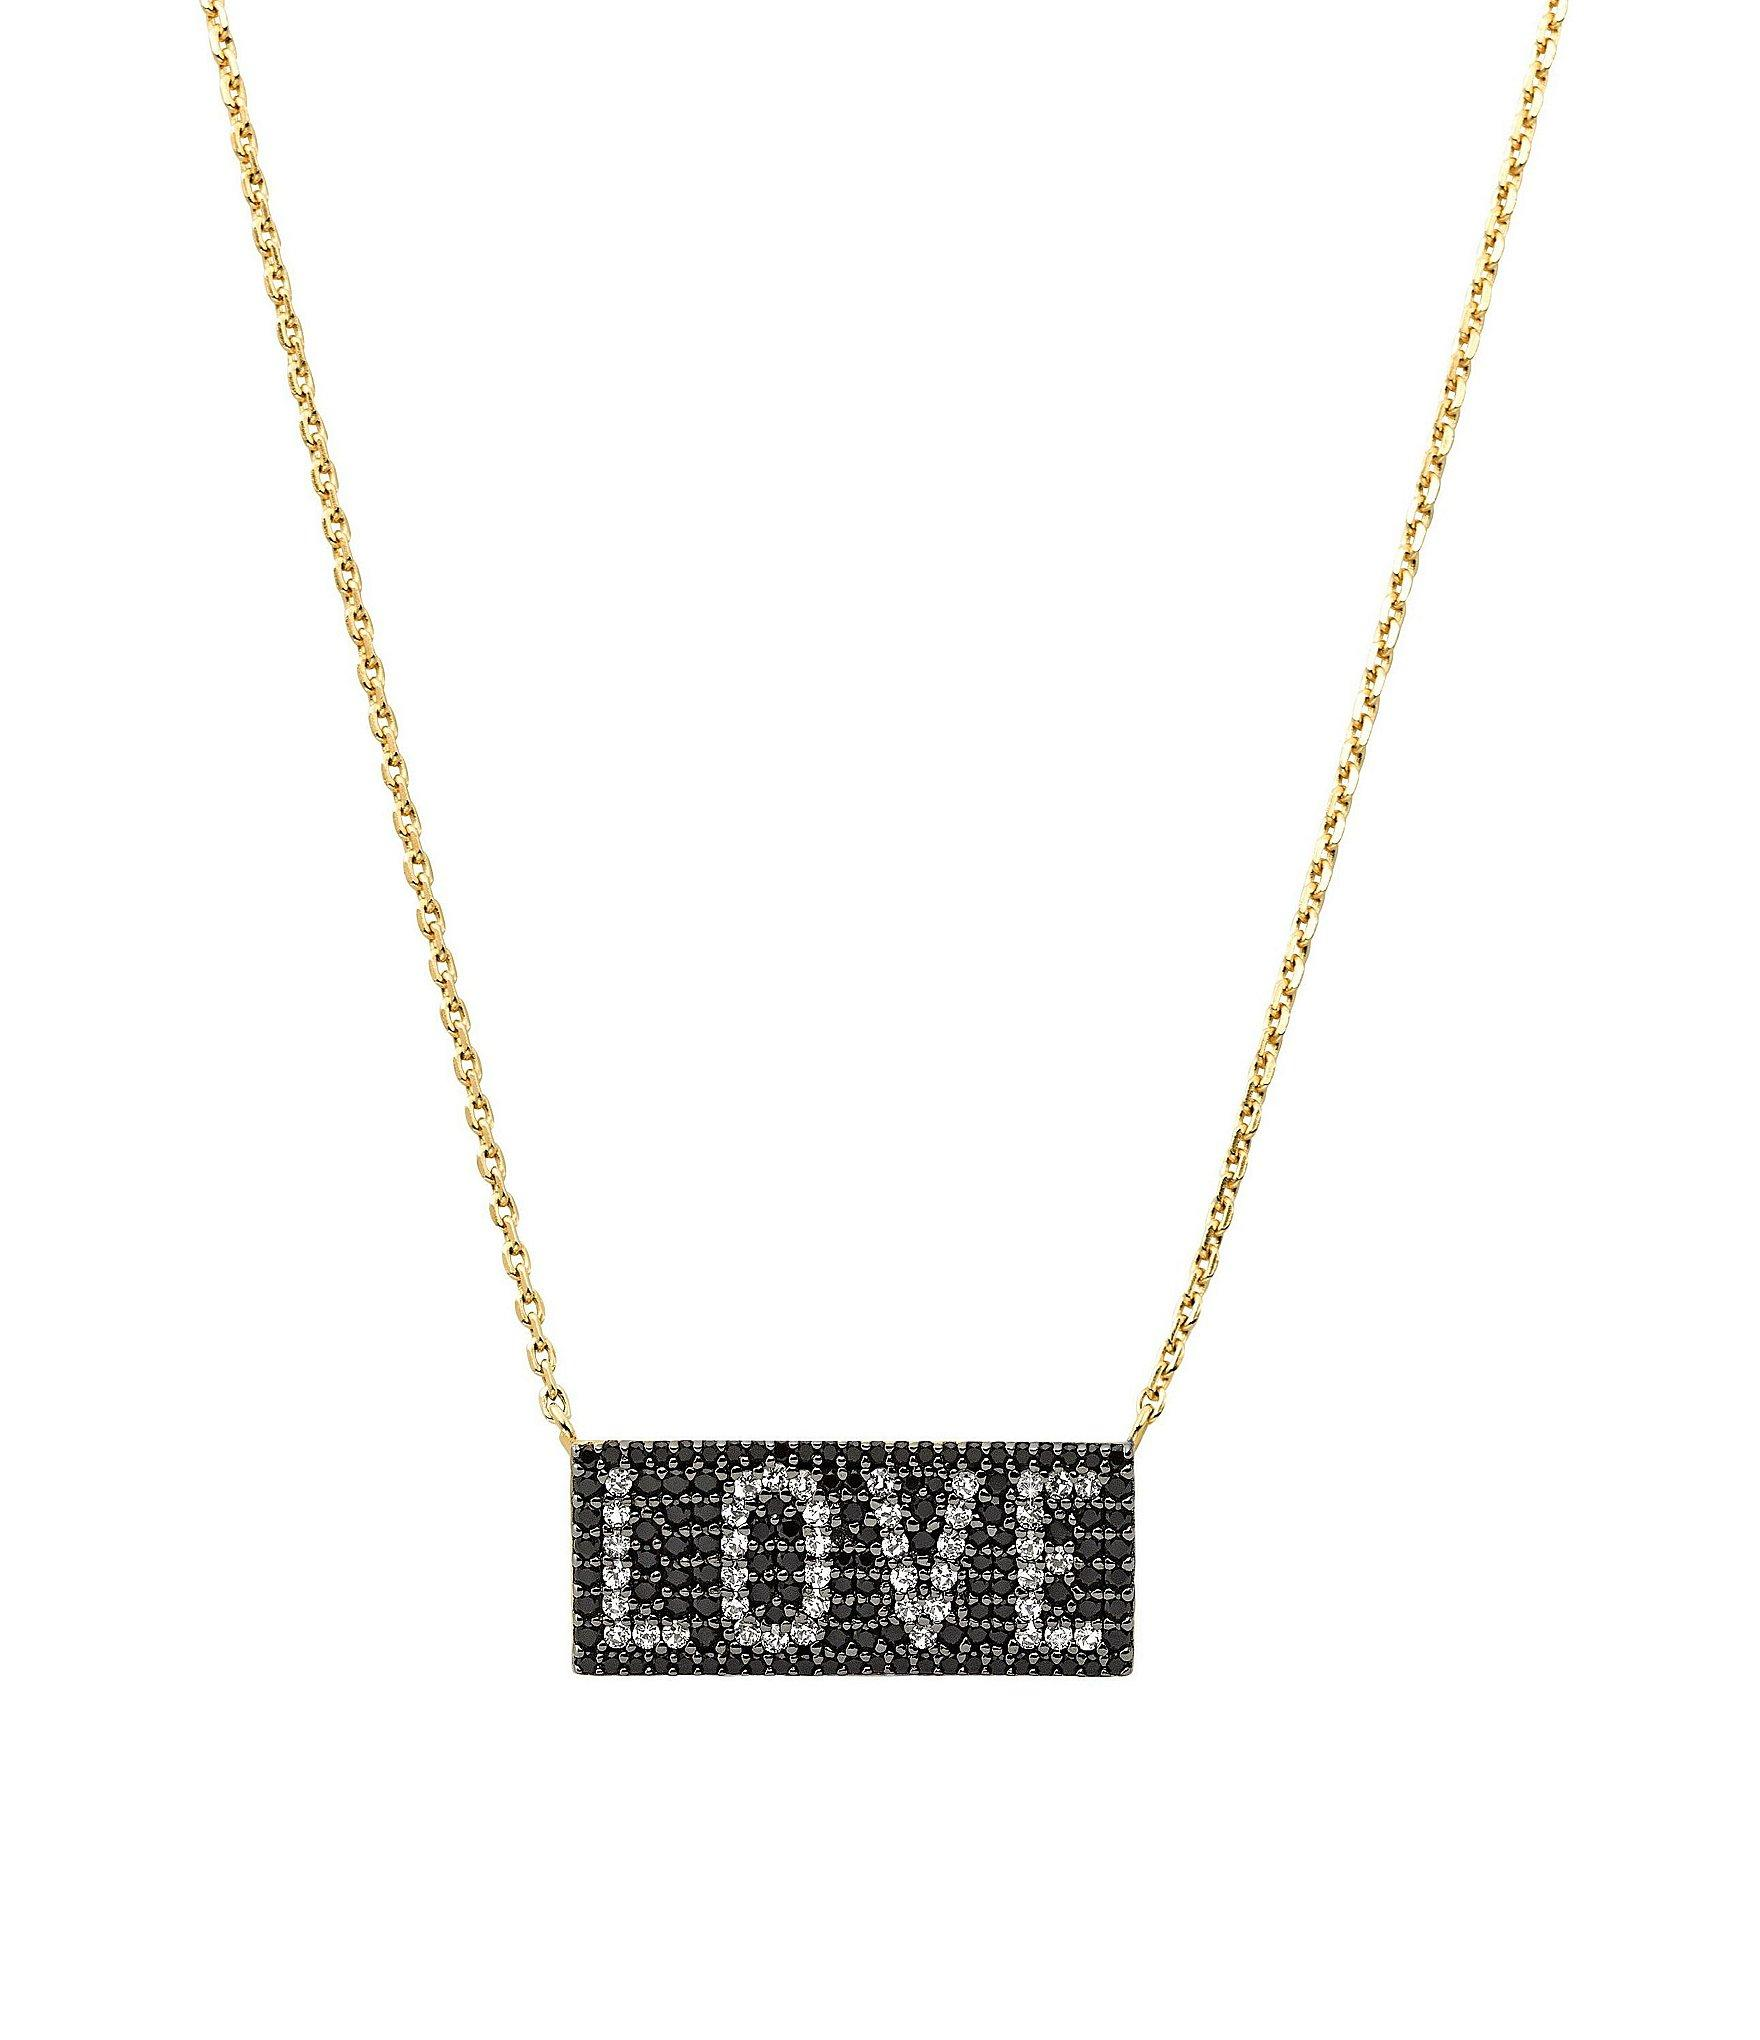 67d23bad26e8 Lyst - Michael Kors Sterling Silver Love Plaque Necklace in Metallic